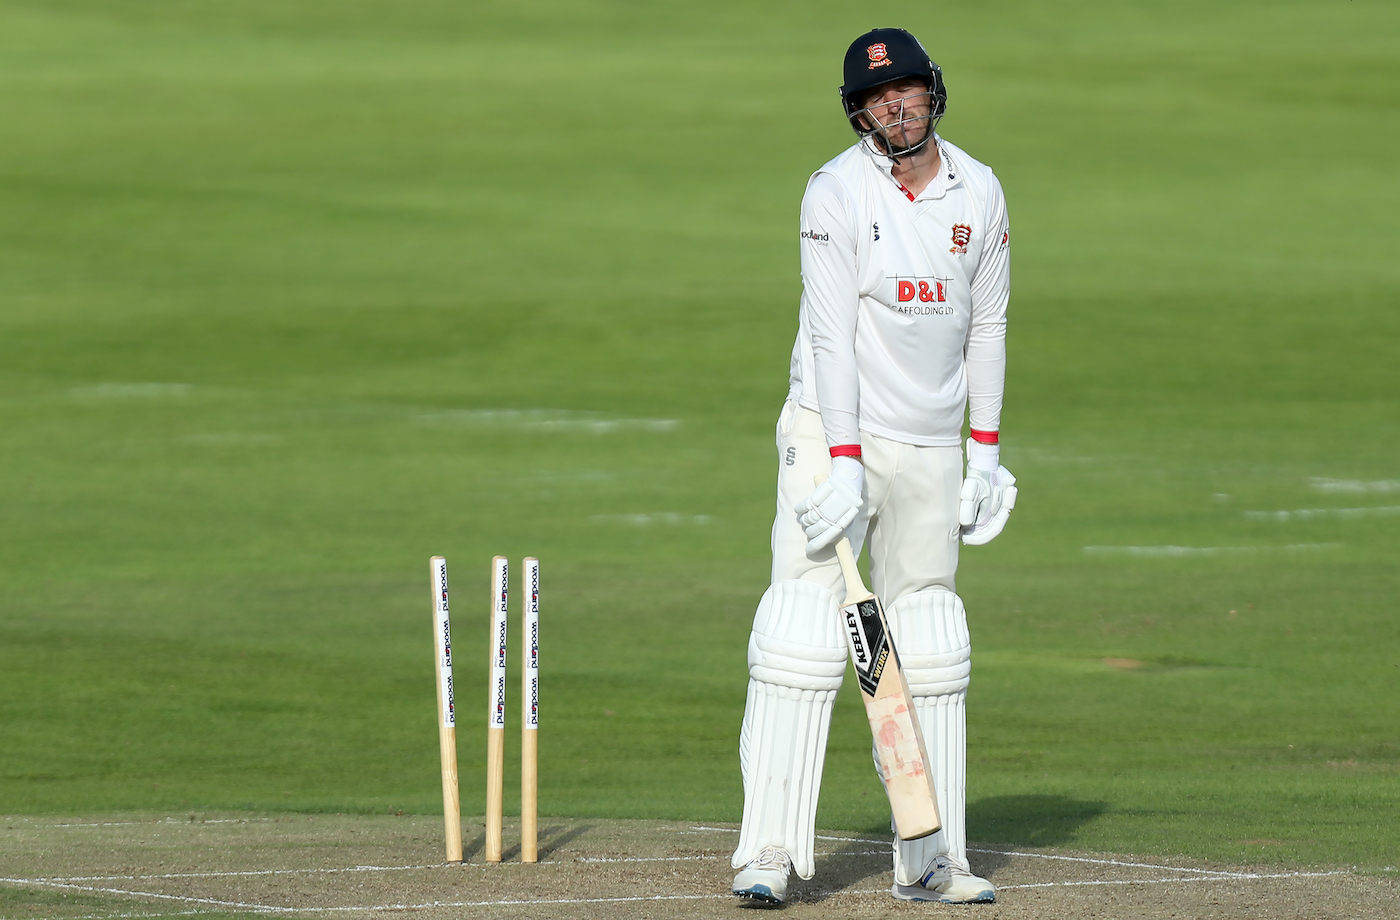 Paul Walter is a picture of abject misery after being bowled out in a game against Middlesex in the Bob Willis Trophy in 2020